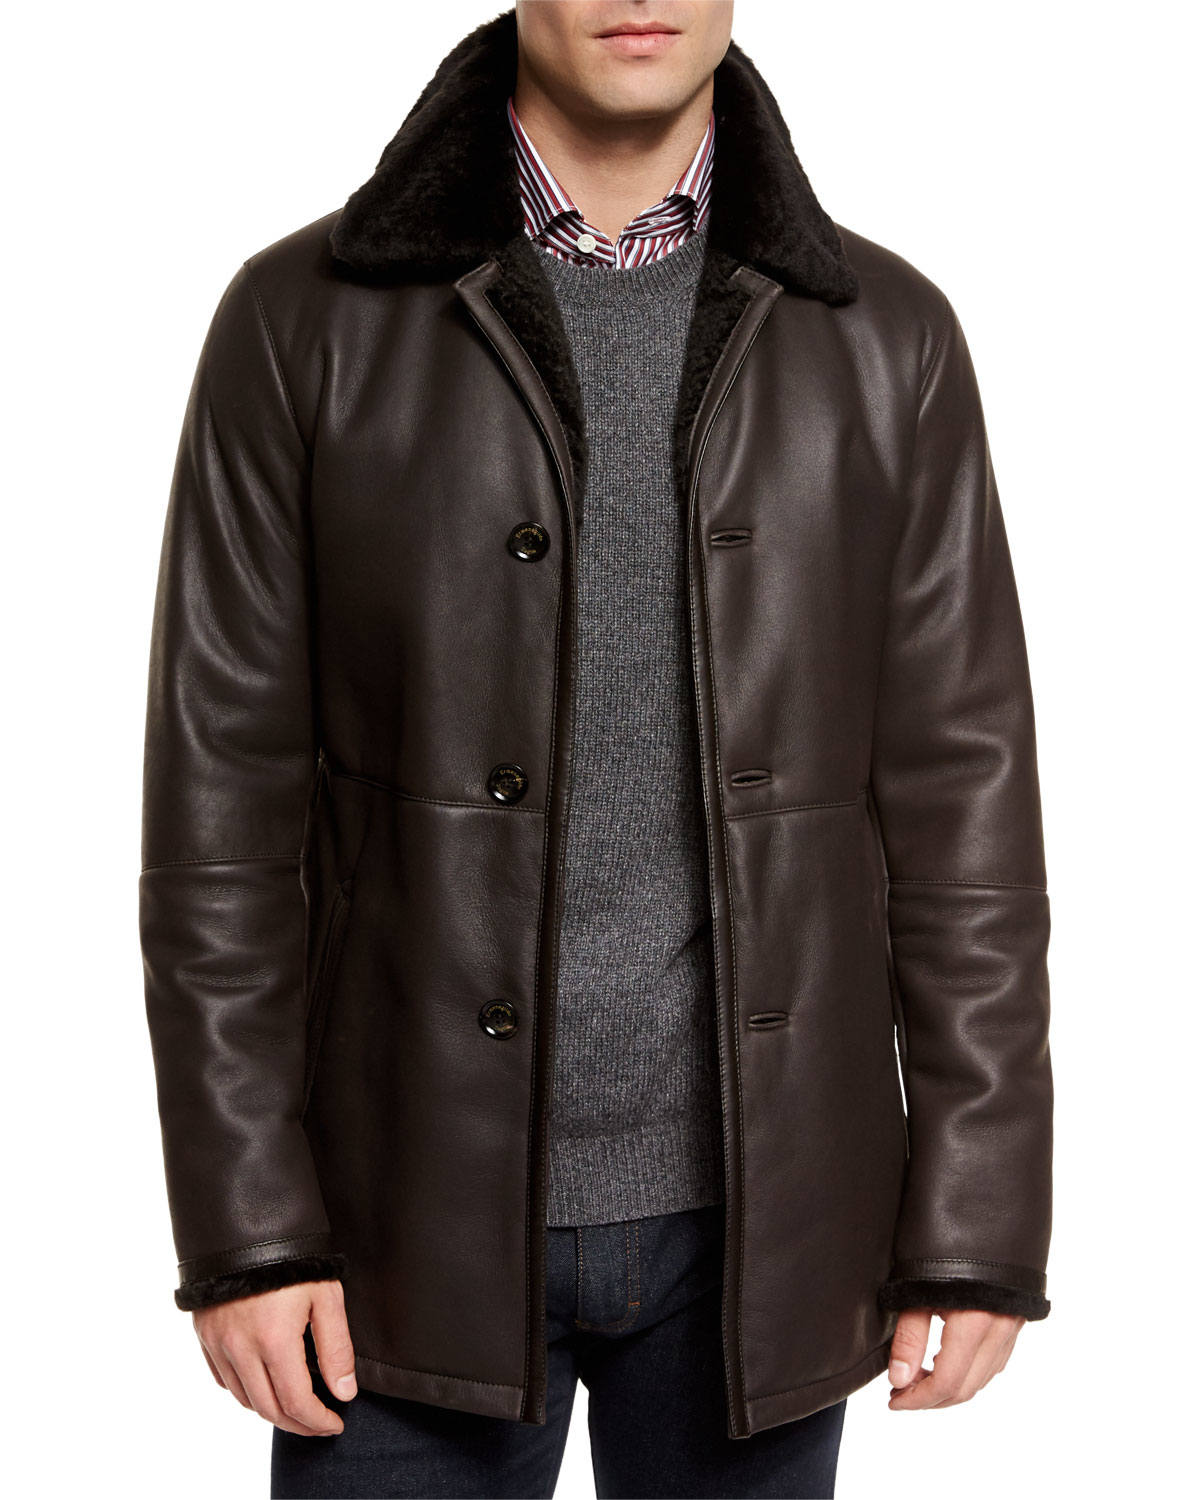 Ermenegildo zegna Leather Jacket With Shearling Fur-lined Collar ...